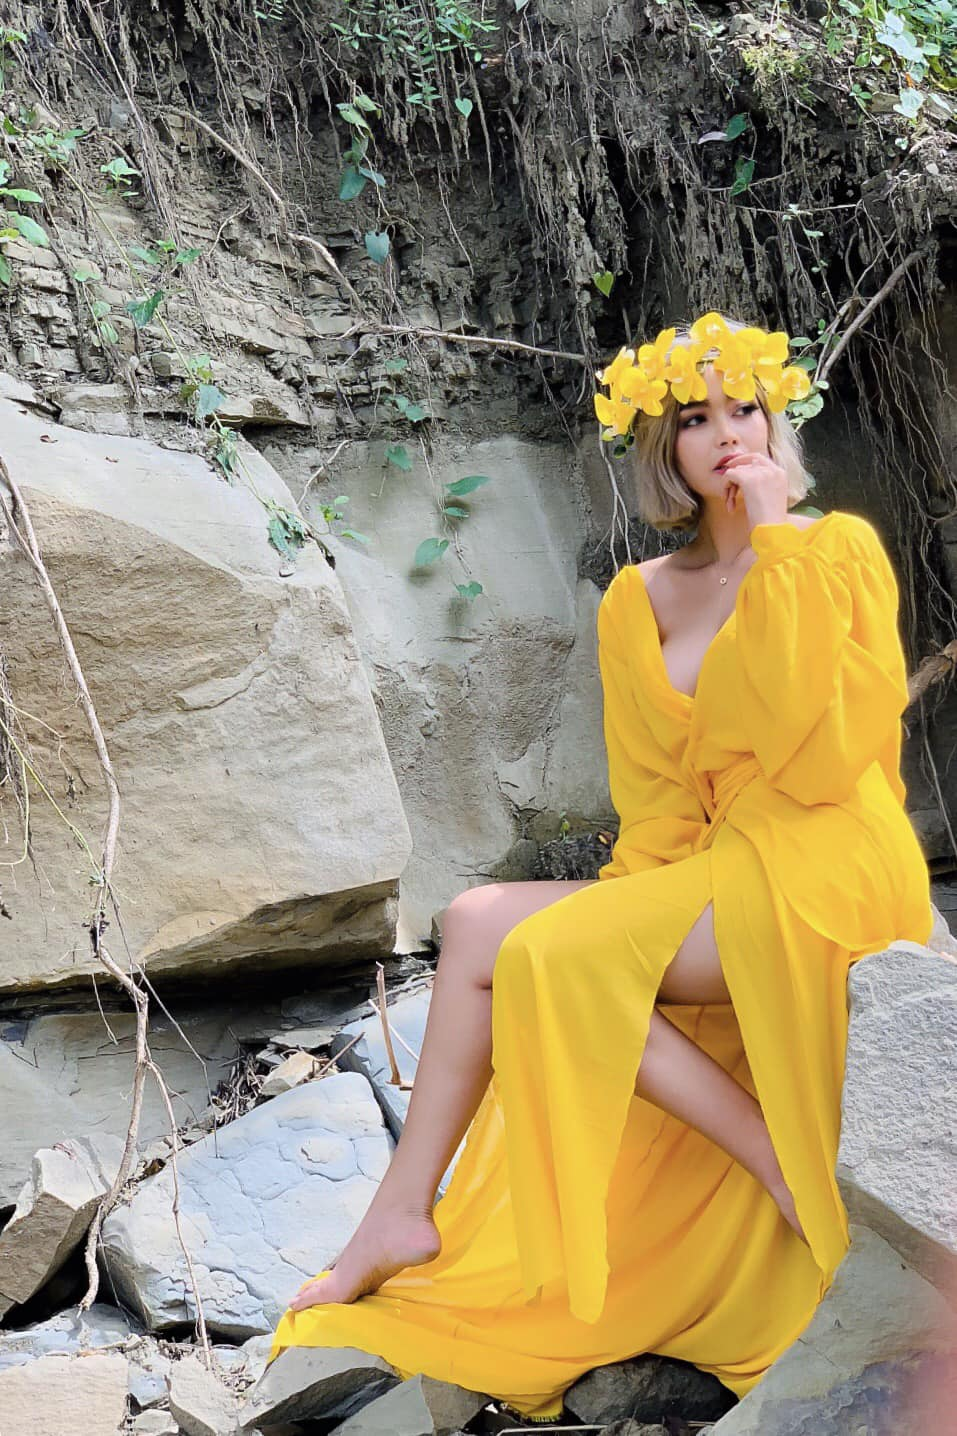 Nwe Nwe Tun - A Beautiful Girl With Yellow Dress Fashion